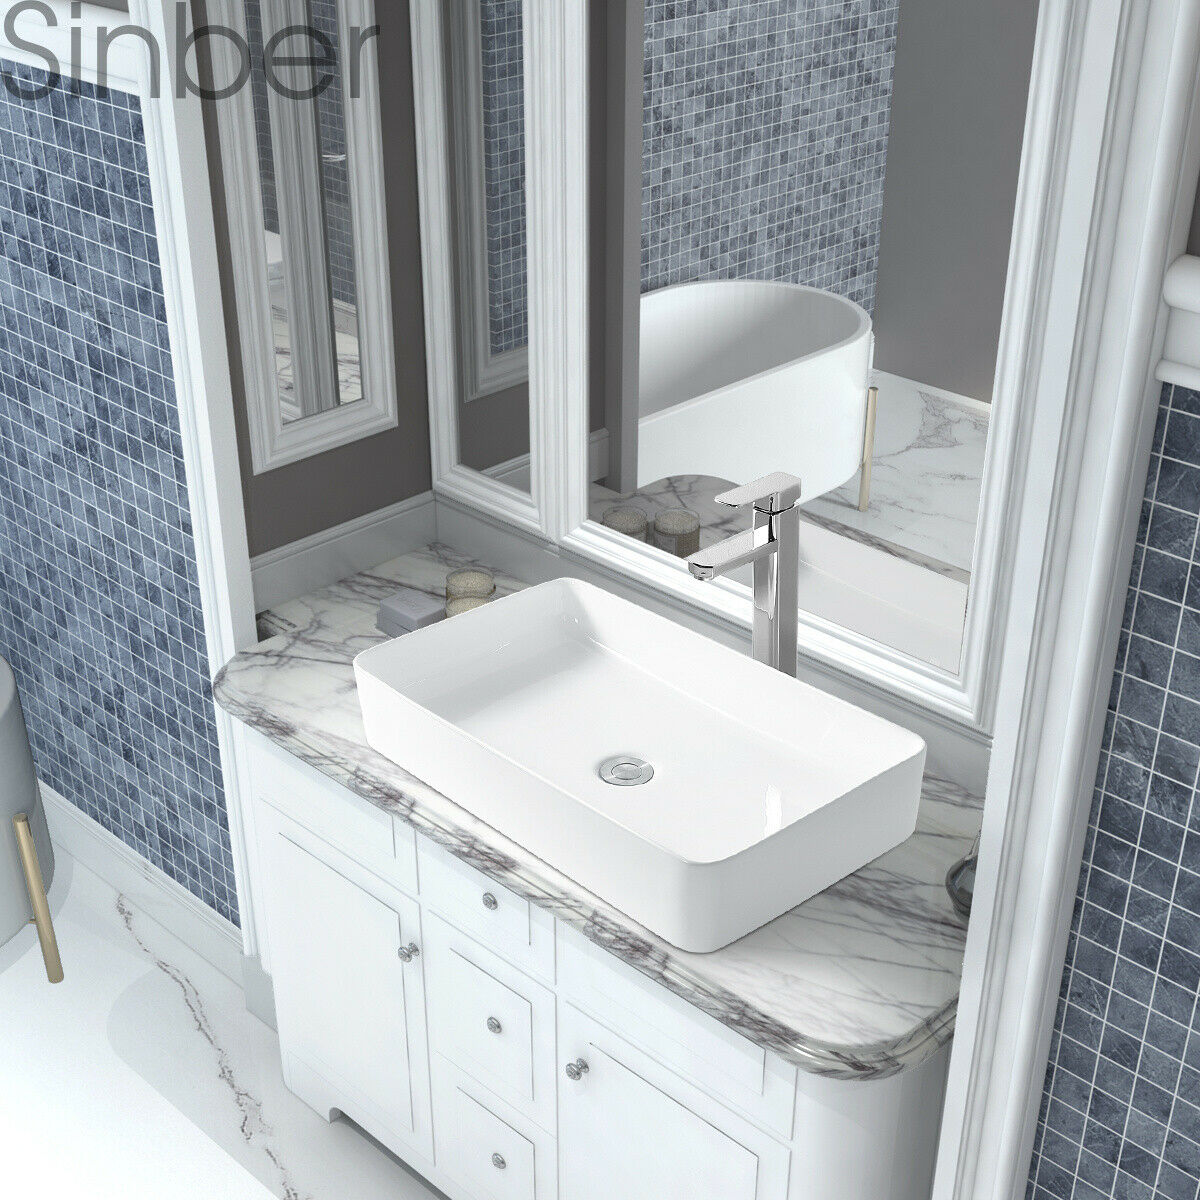 American Imaginations Above Counter Rectangle Vessel Bathroom Sink For Sale Online Ebay